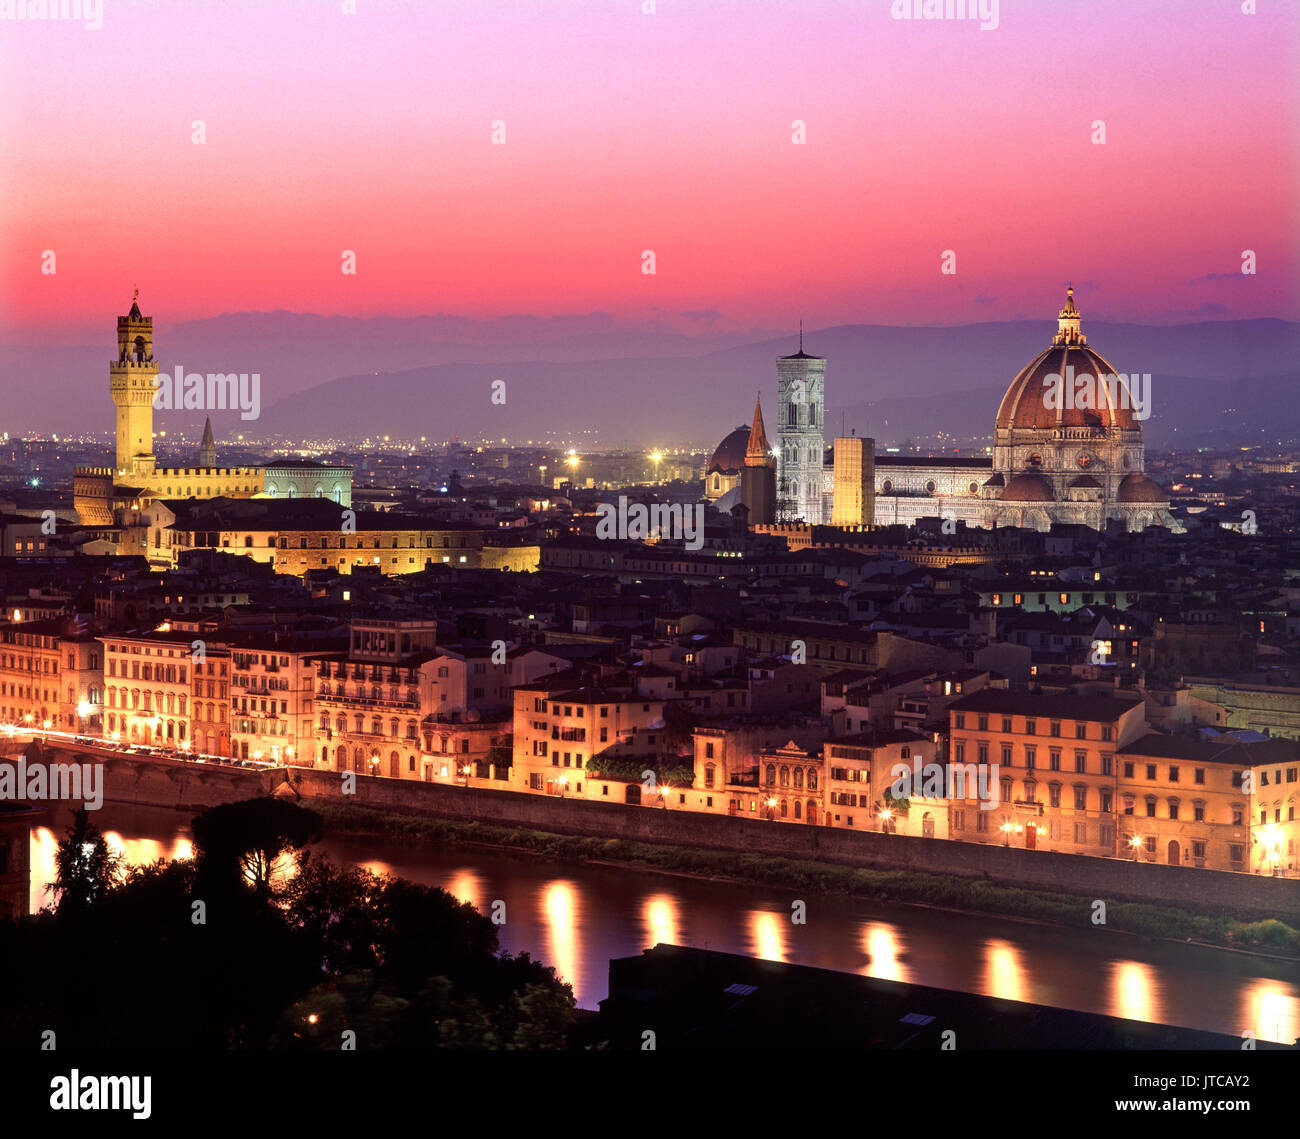 Overview of Florence at dusk from Piazzale Michelangelo with city of Florence in background, Lombardy, Italy - Stock Image